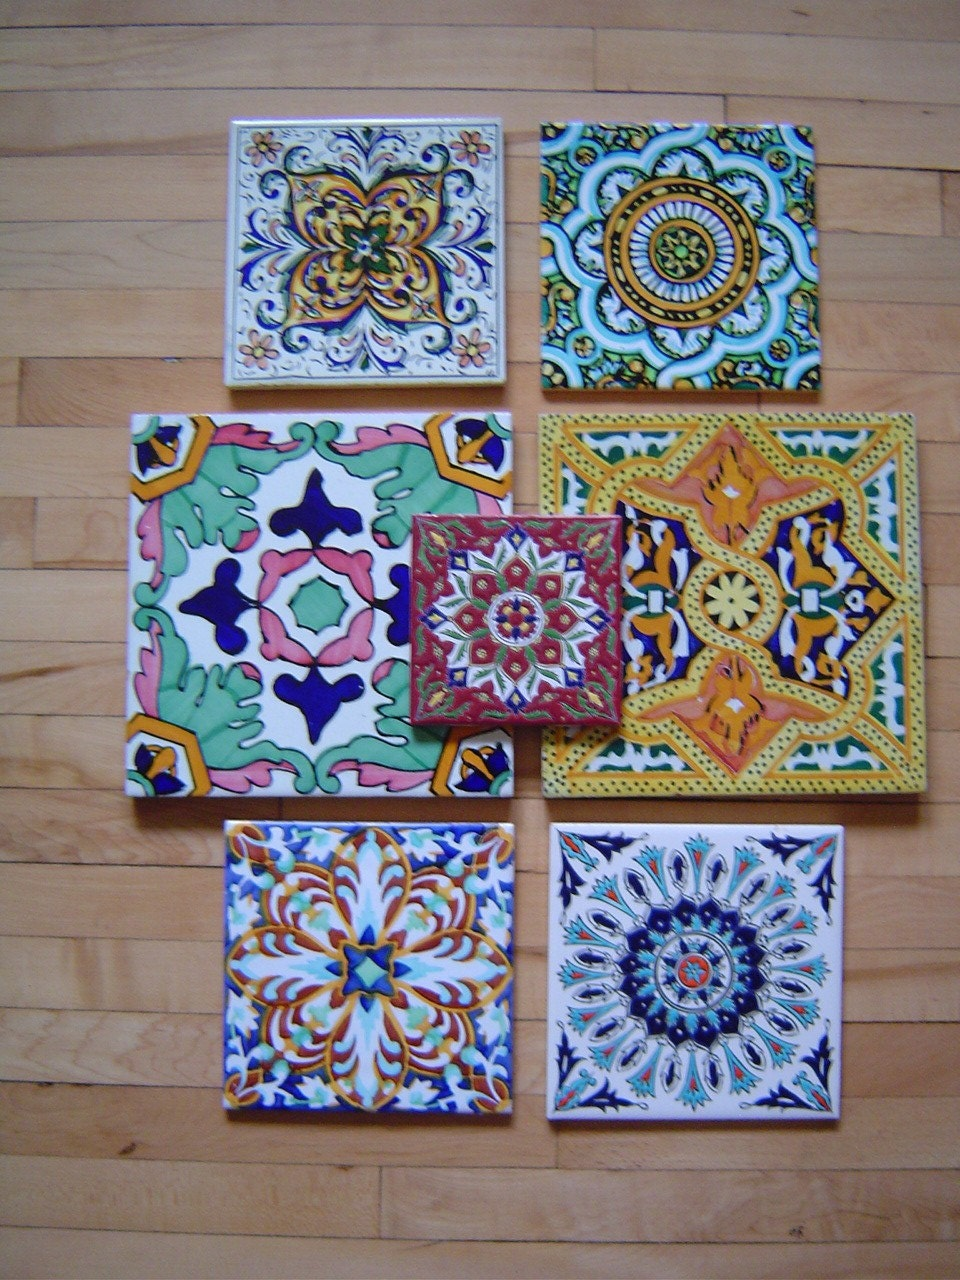 7 Older Beautiful Spanish And Greek Decorative Tiles By